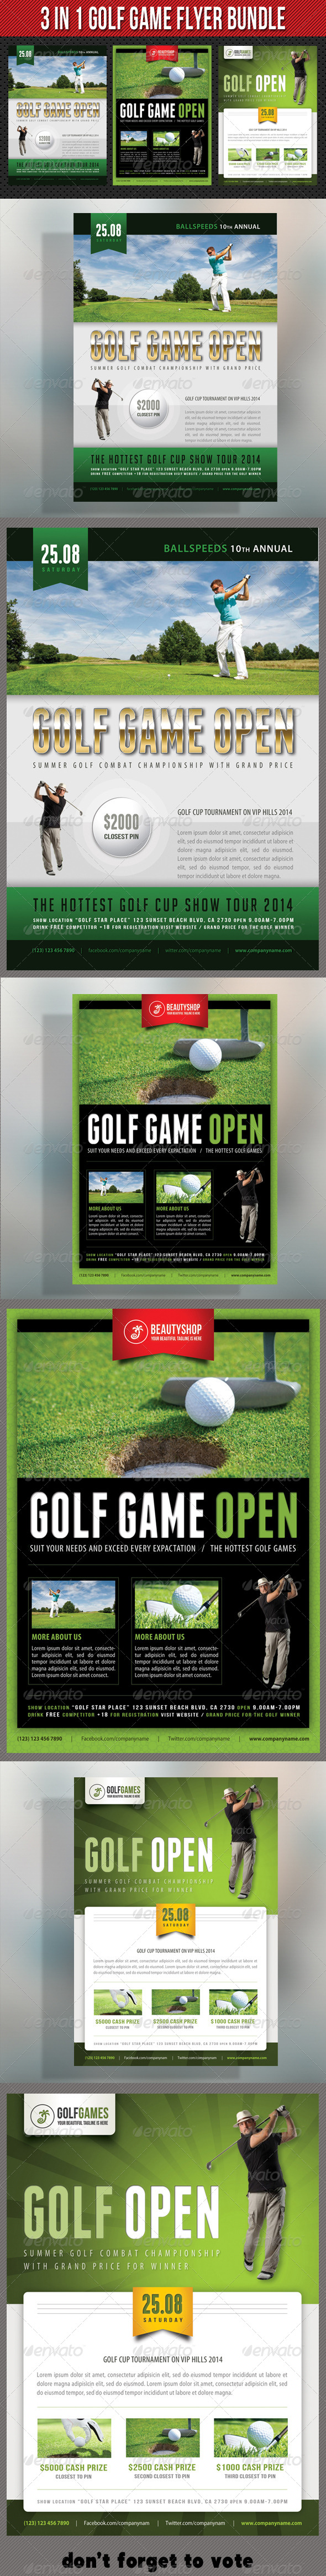 3 in 1 Golf Game Flyer Bundle 03